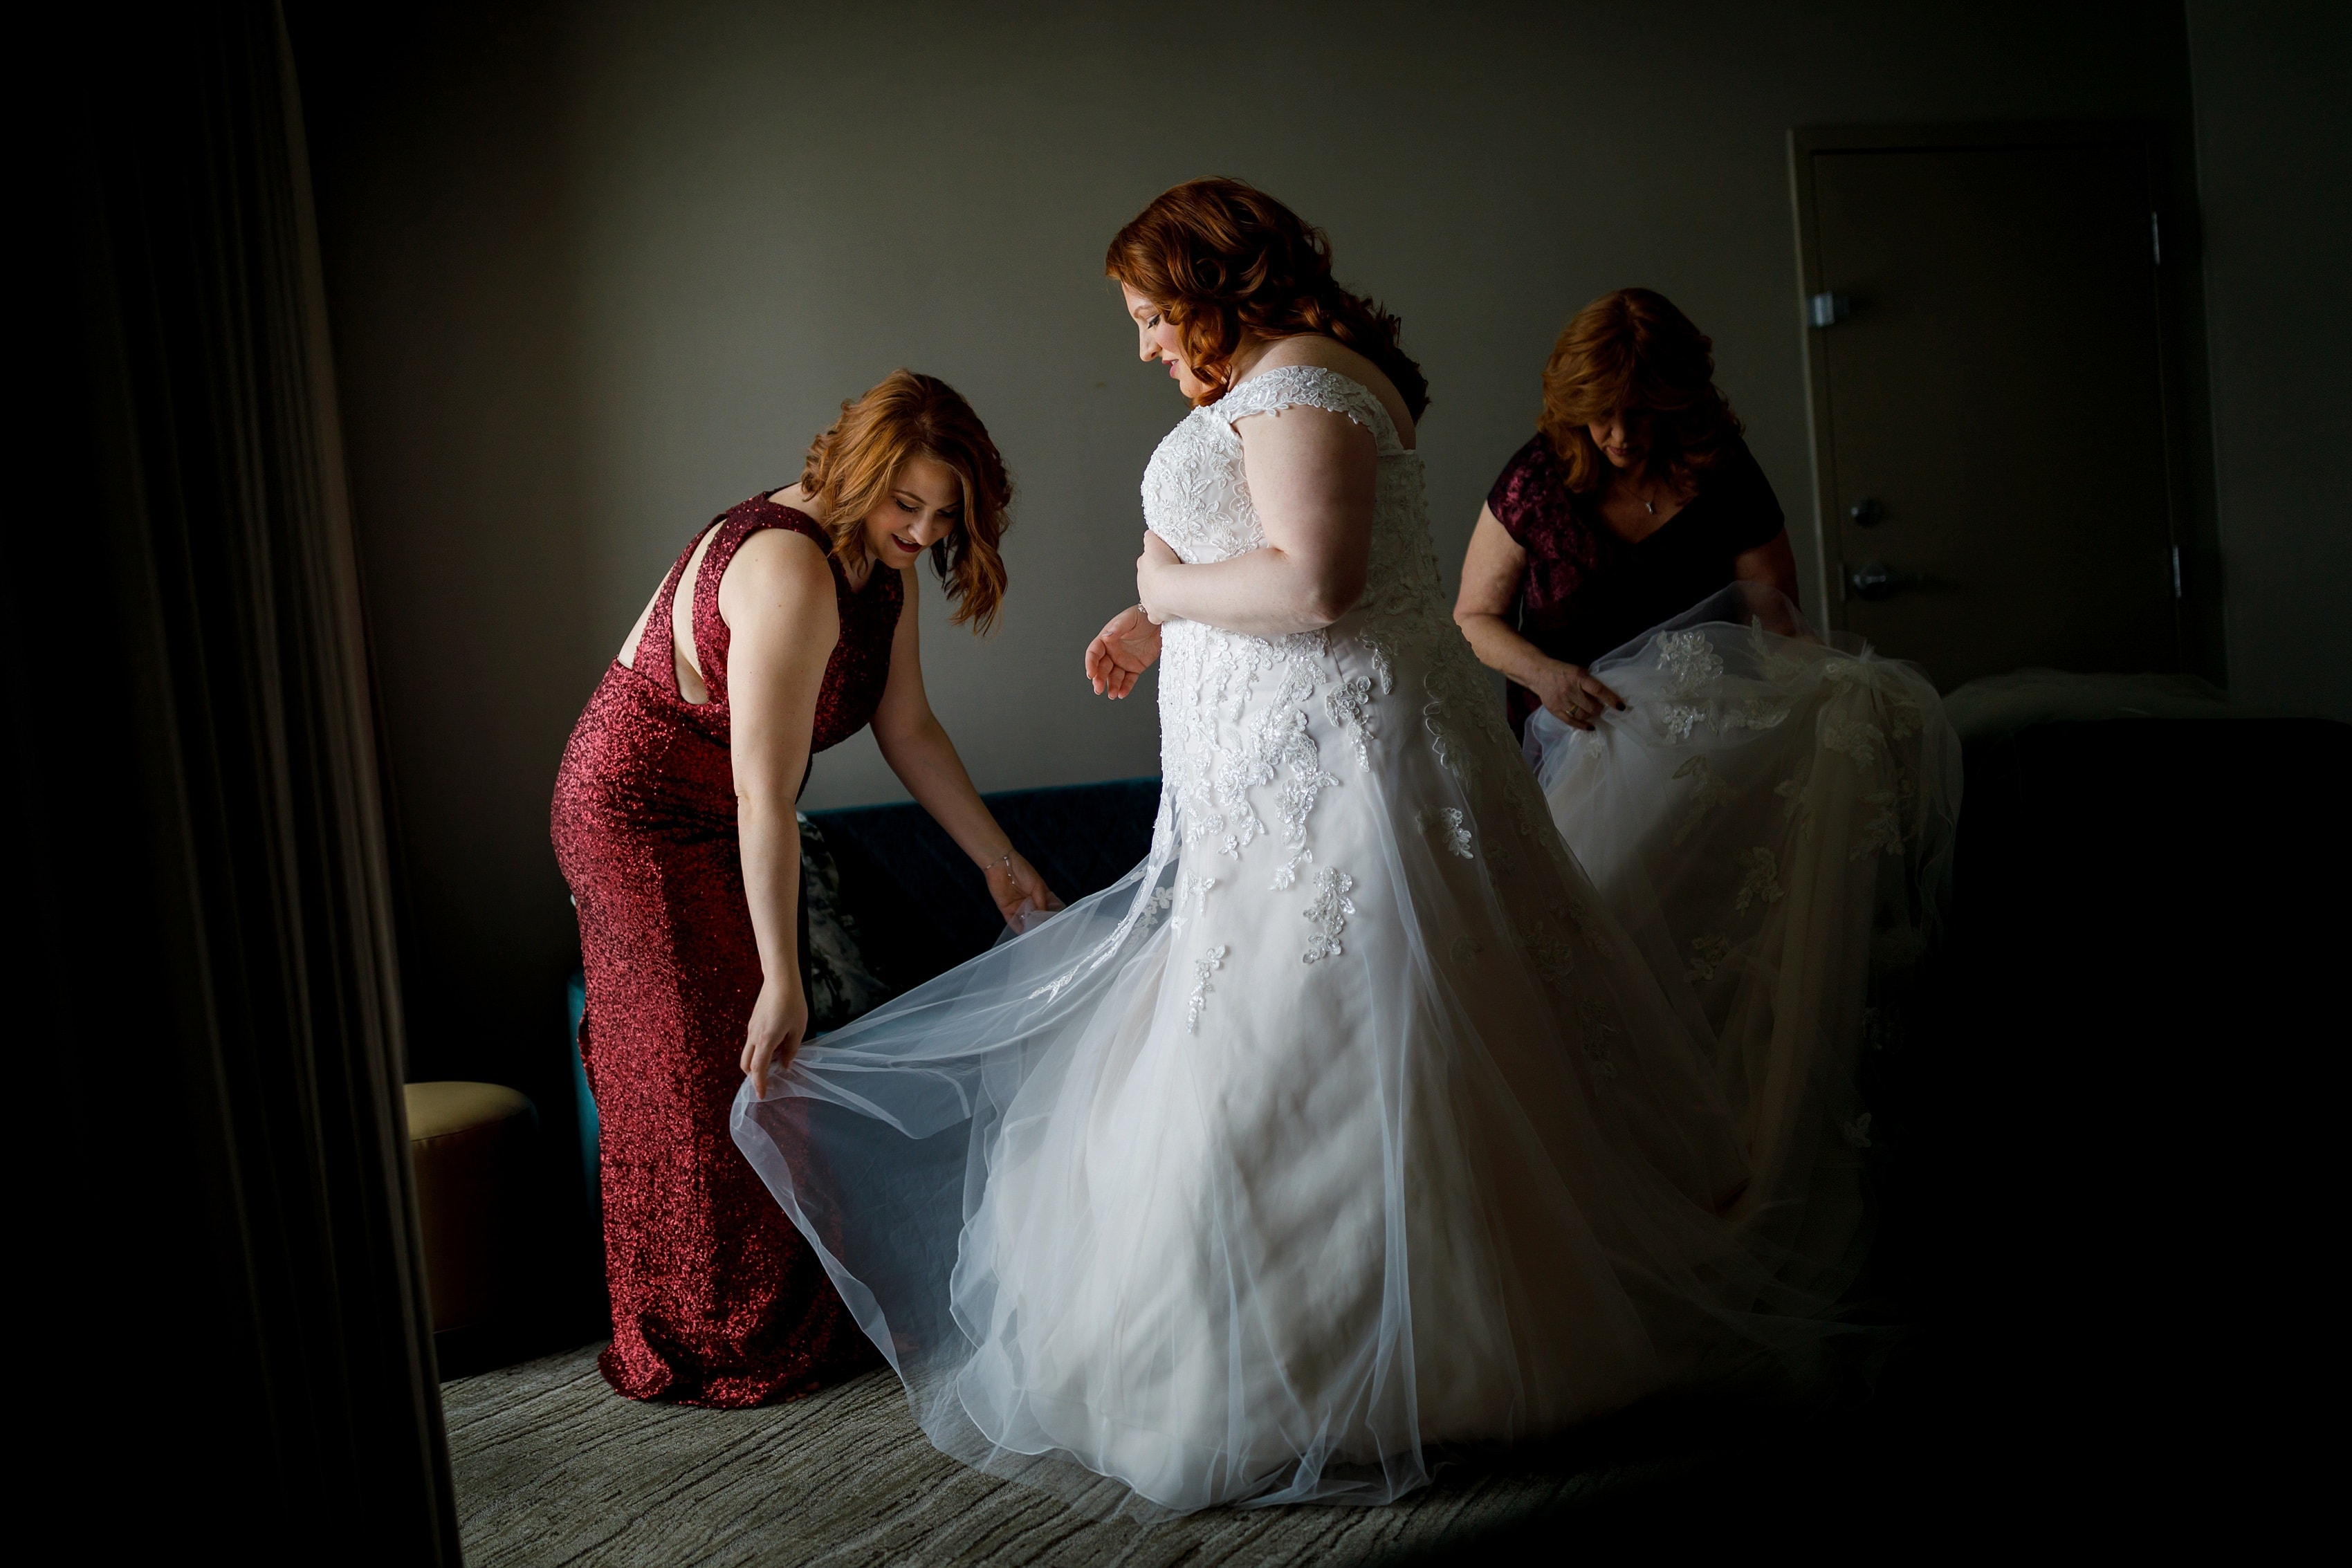 sister and mother help bride with wedding dress